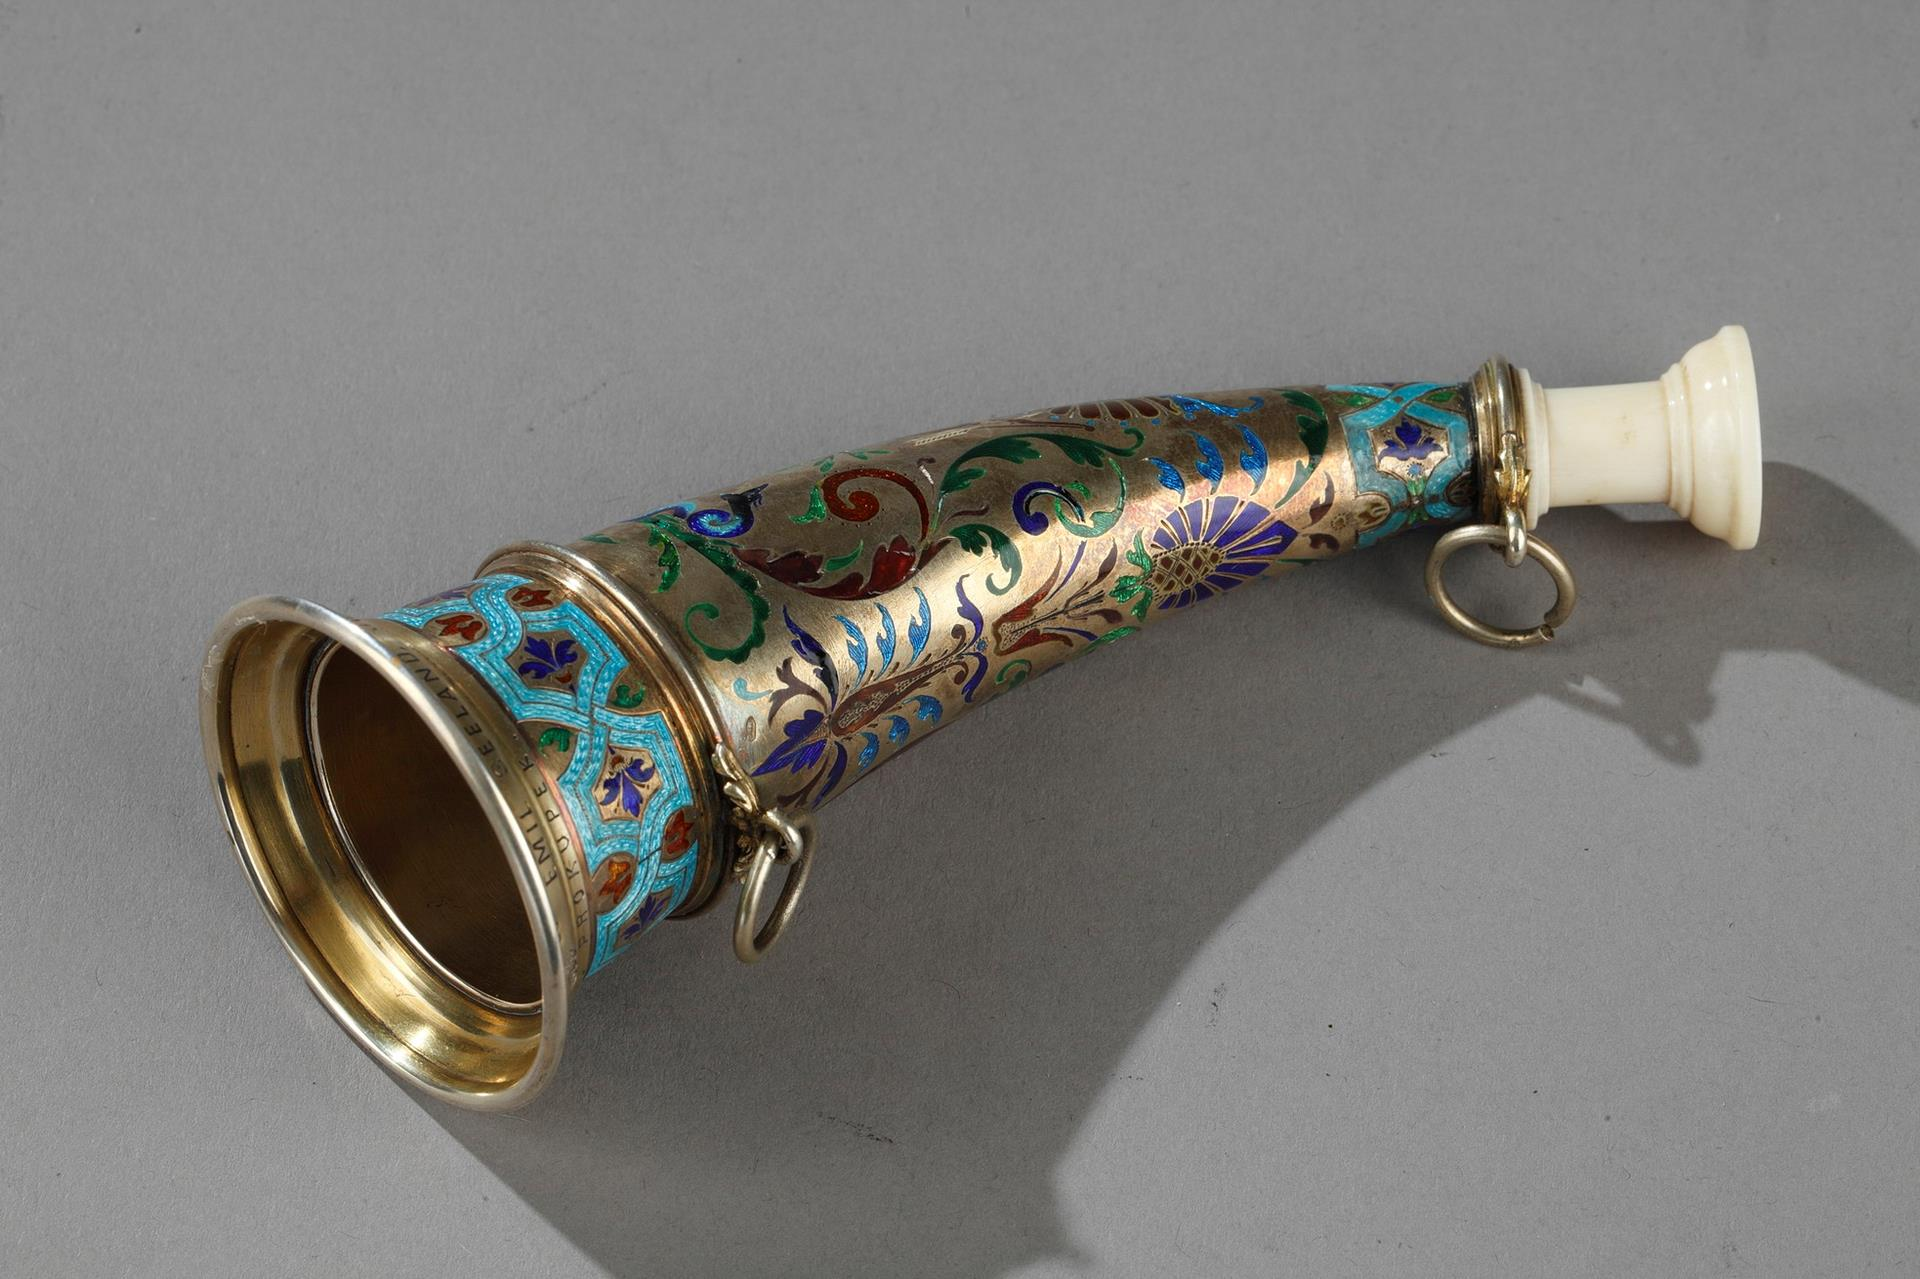 Austrian silver-gilt, enamelled and ivory mounted hunting horn.